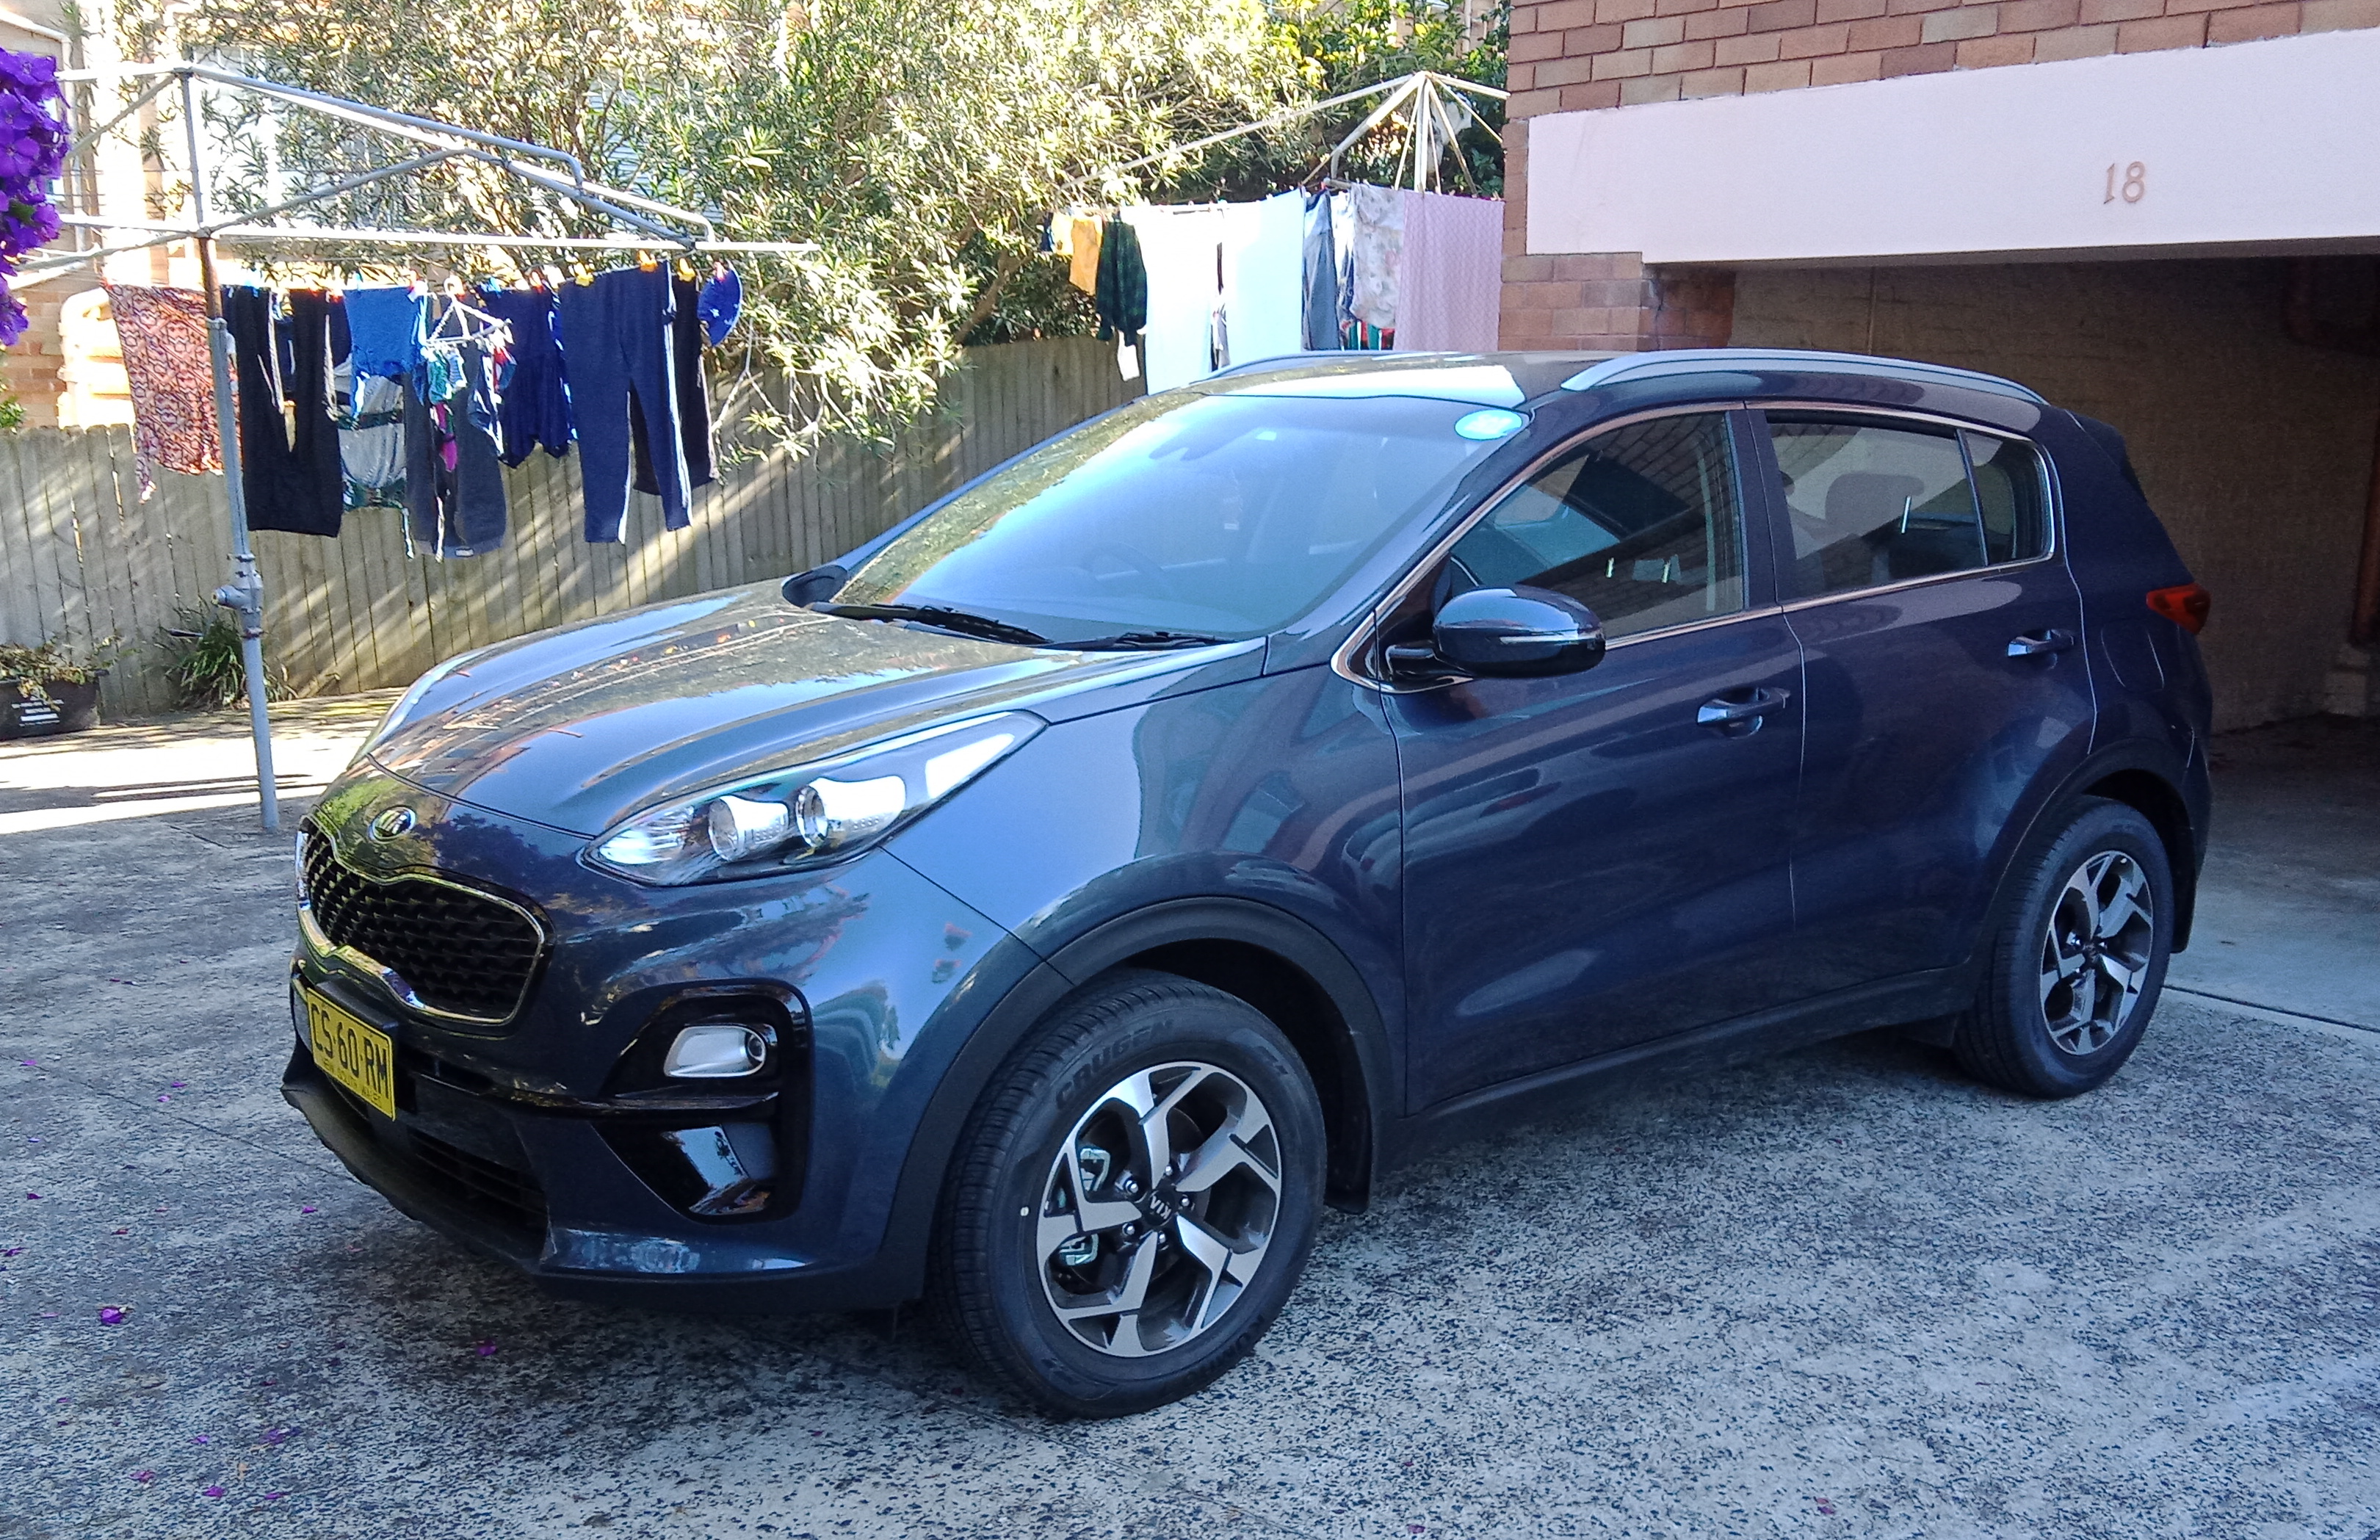 Picture of Arvind's 2018 Kia Sportage